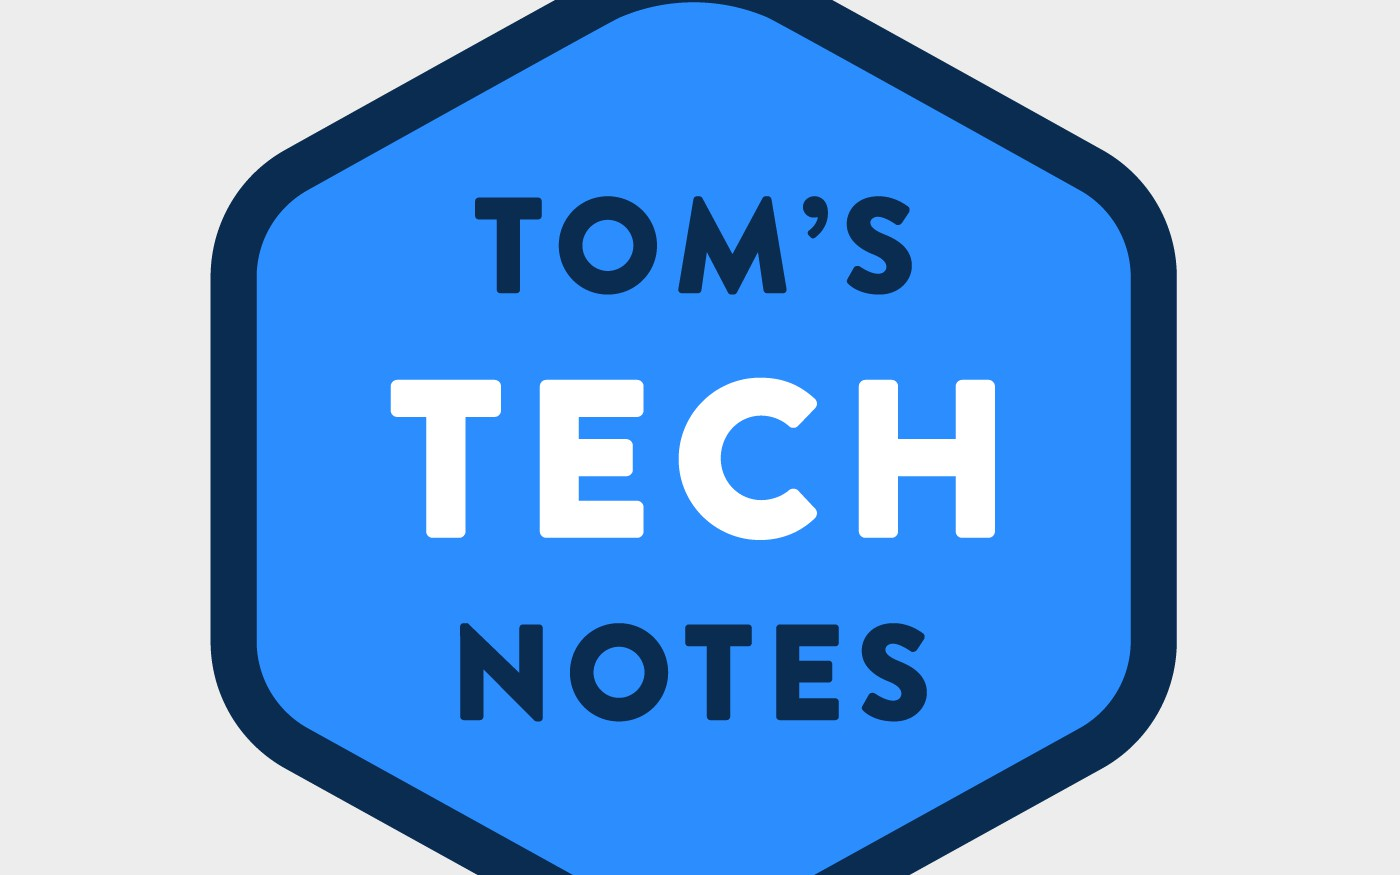 Tom's Tech Notes: Automated Testing Advice for Devs [Podcast]